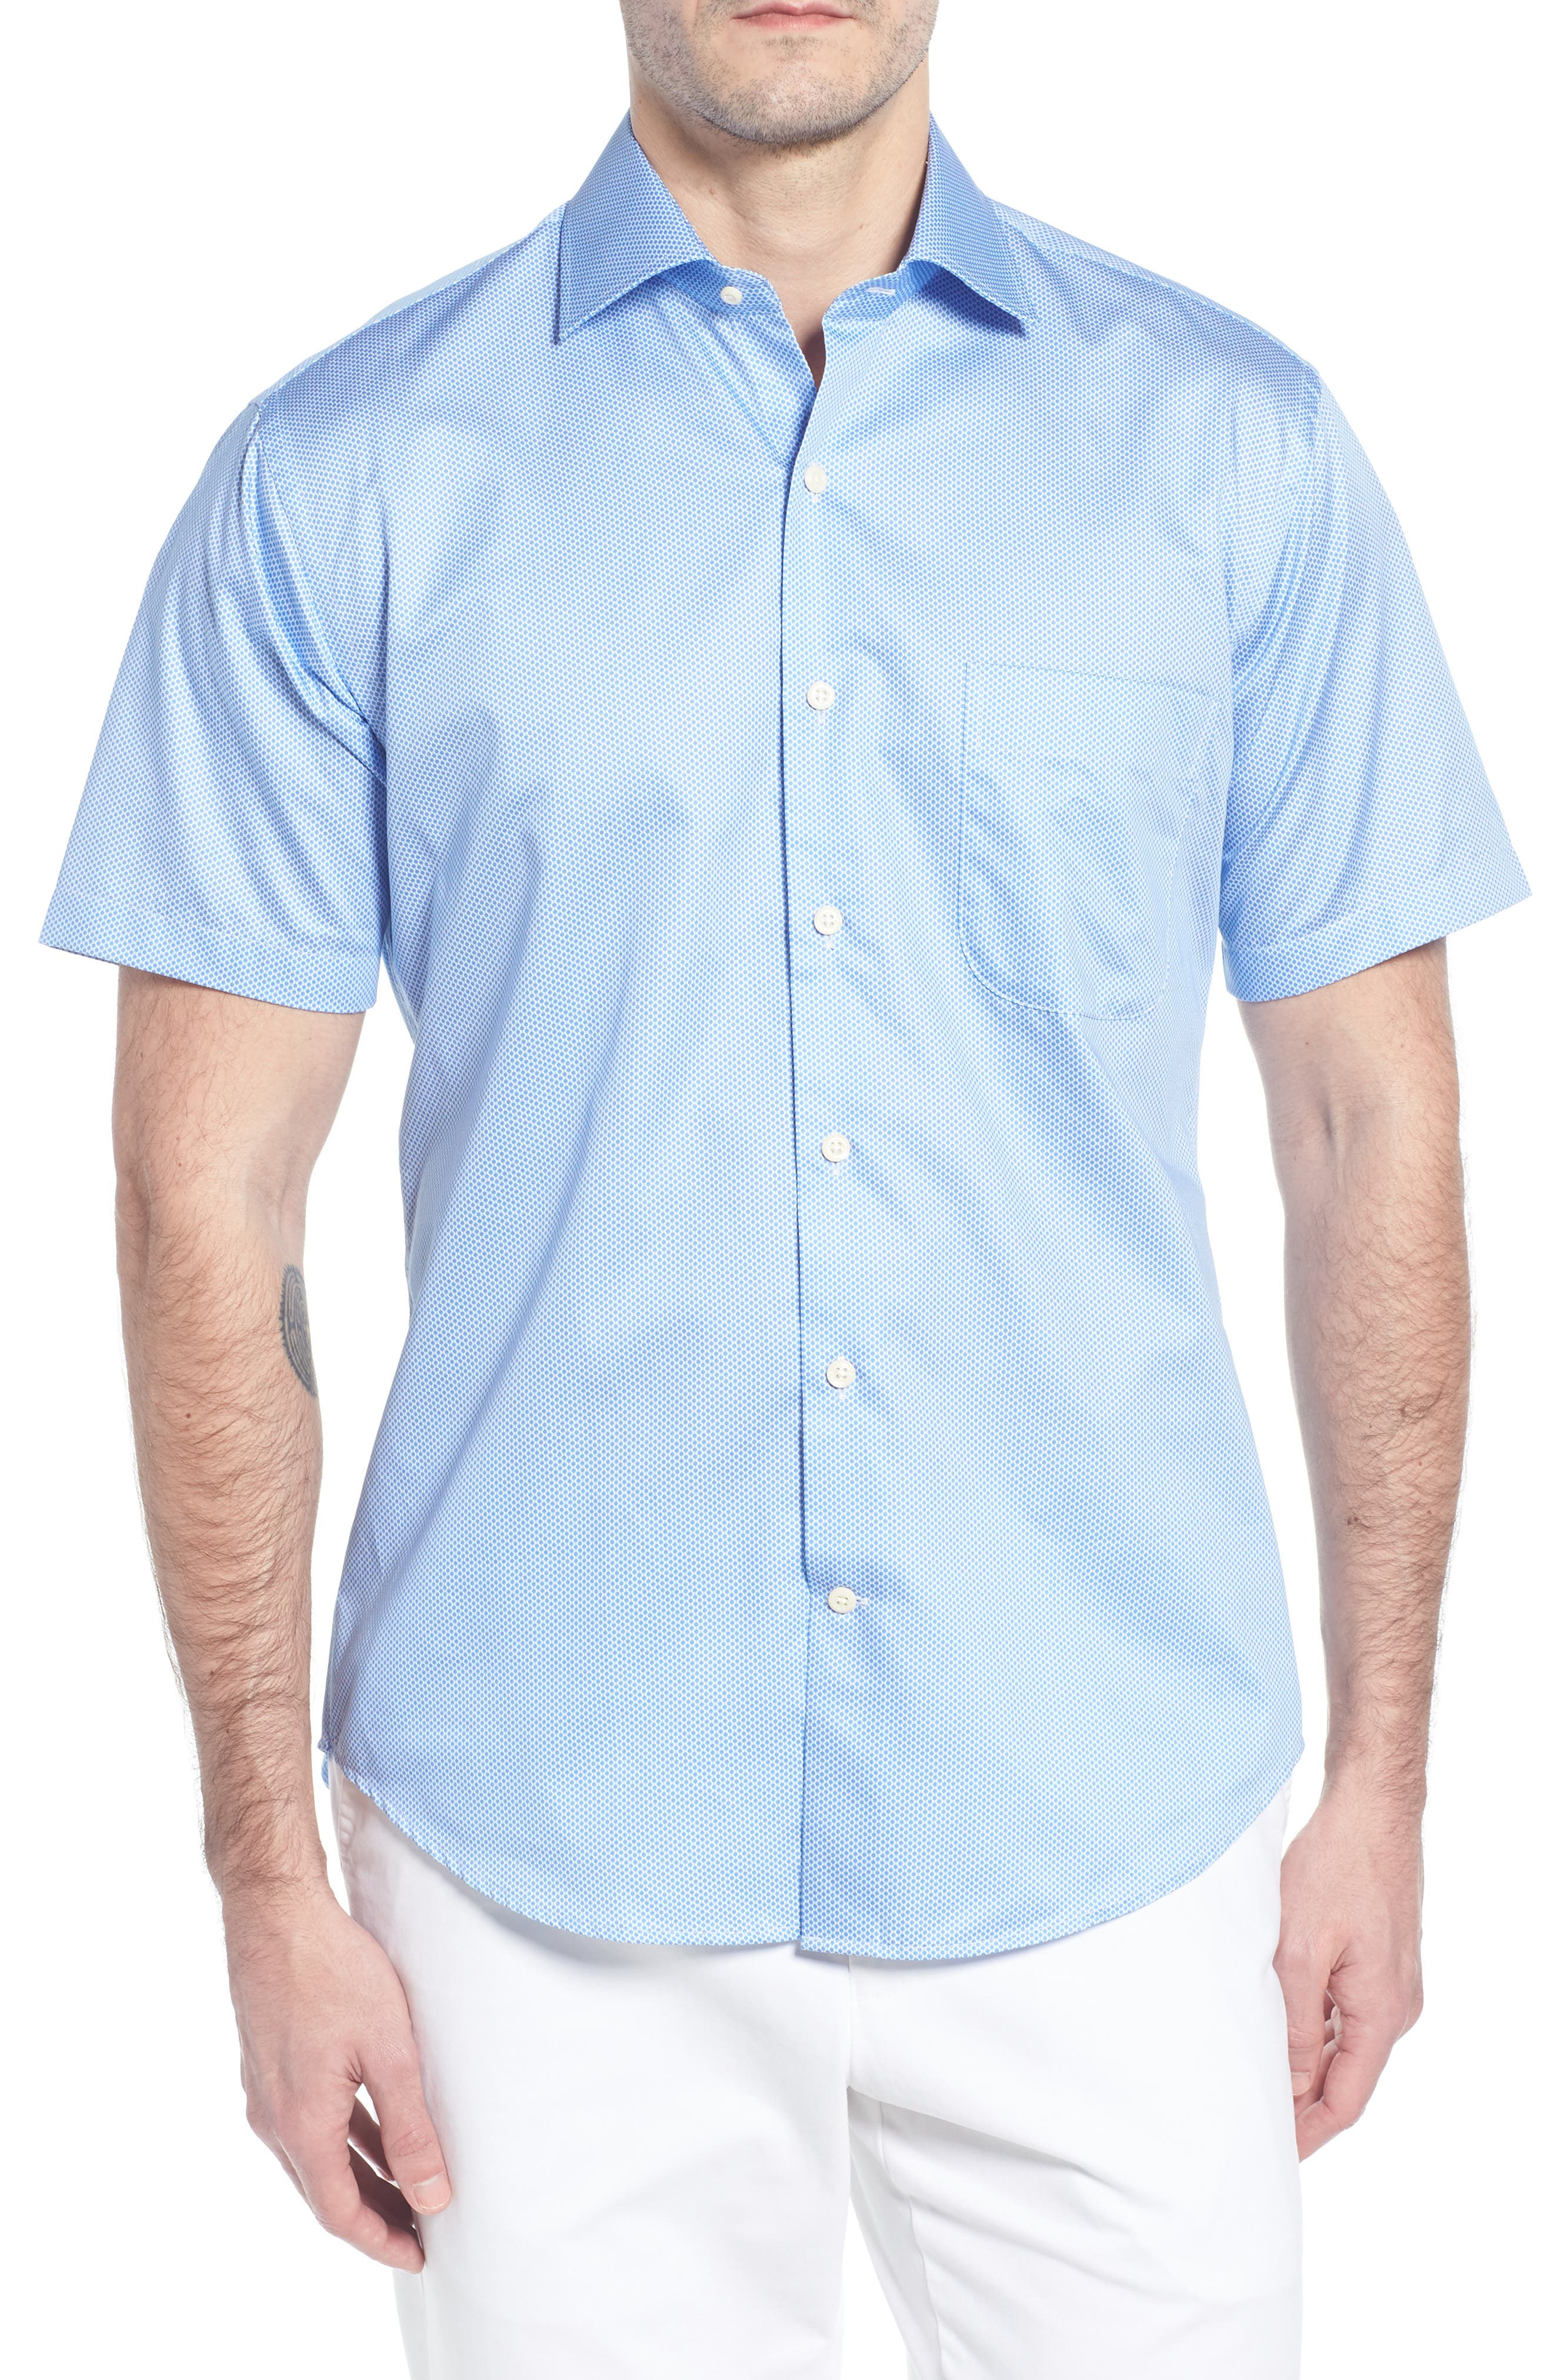 Crown Ease Connecting the Dots Sport Shirt,                             Main thumbnail 1, color,                             ATLAS BLUE